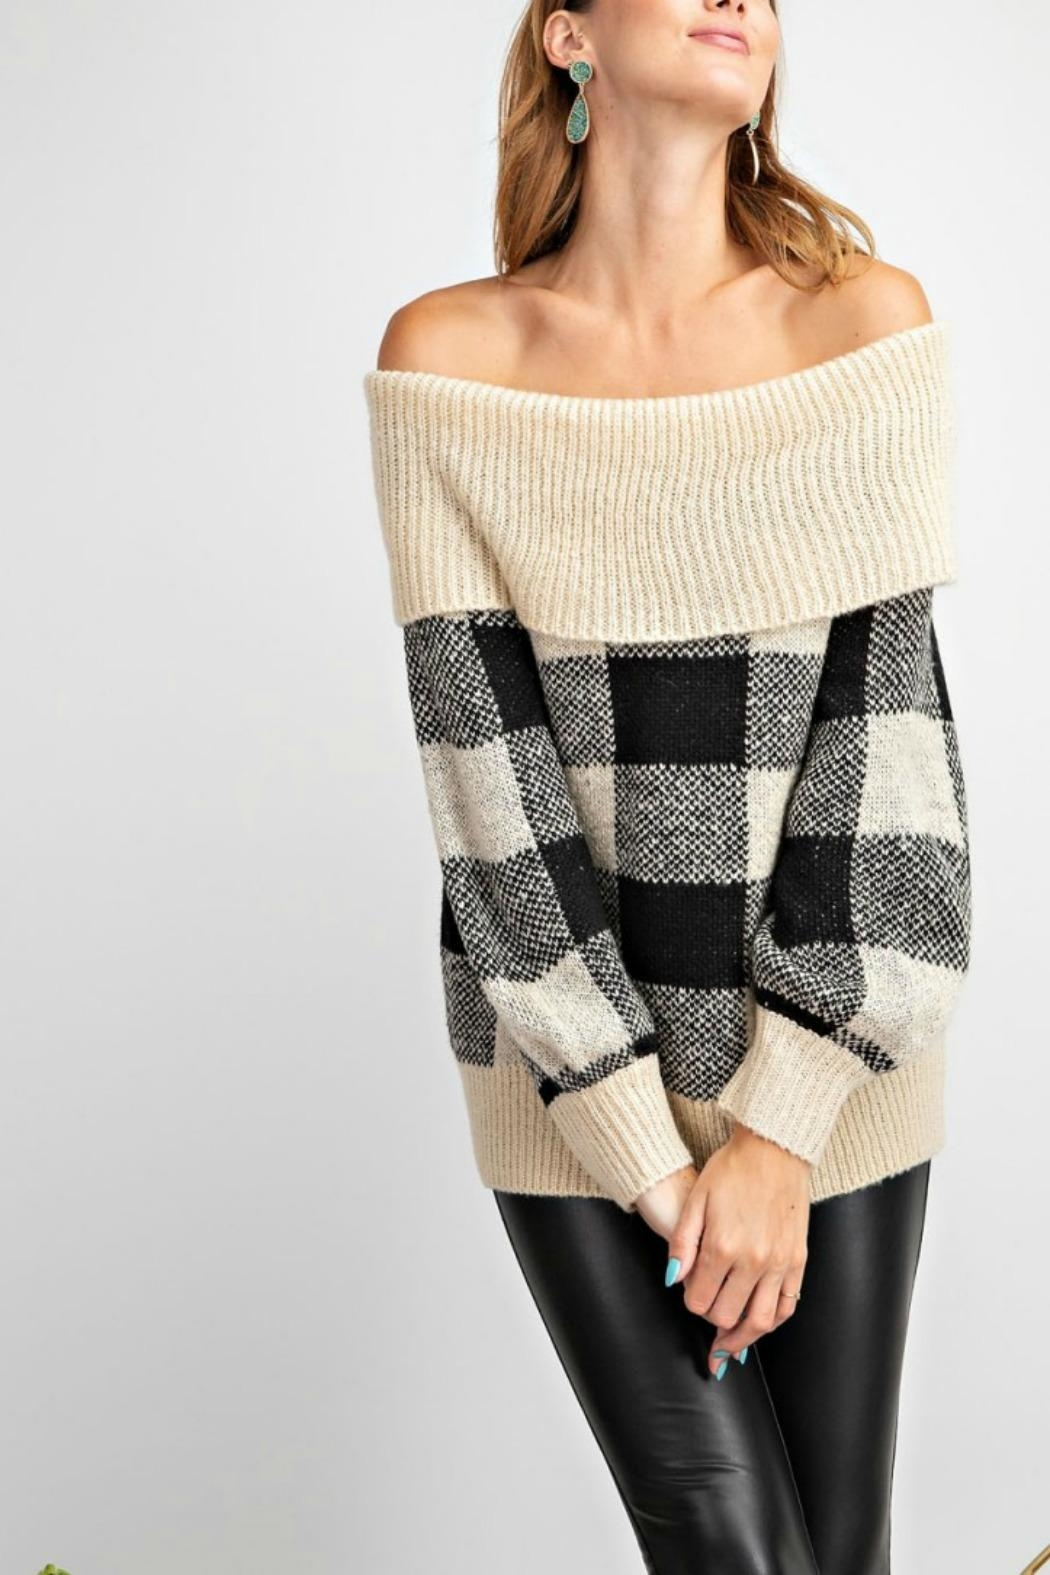 easel Argyle Sweater - Front Full Image